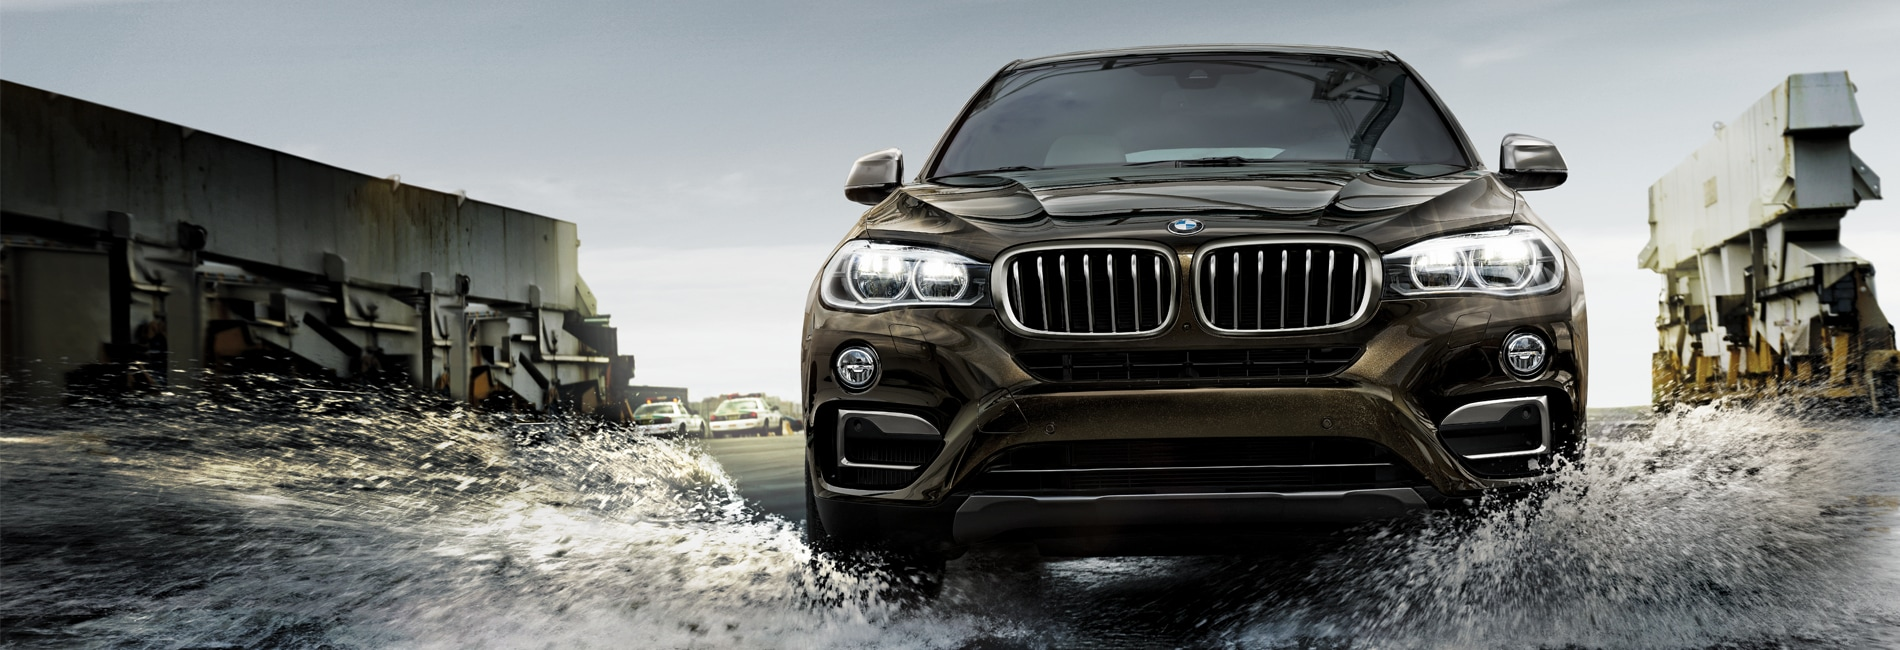 2018 BMW X6 Exterior Features